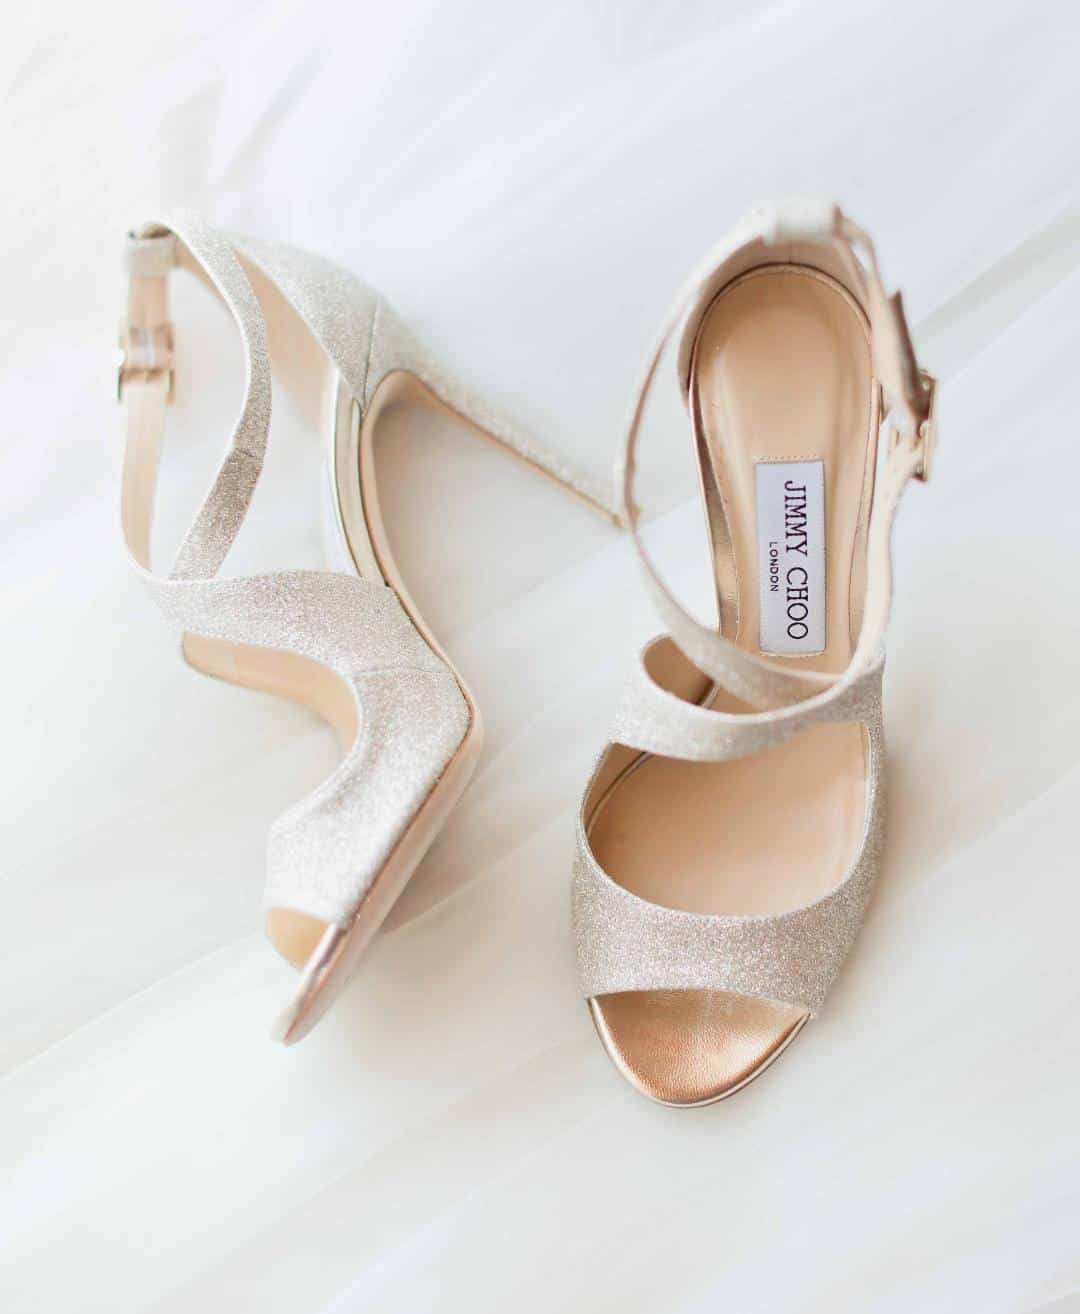 Scarpe Da Sposa.Stile Sposa Archives Wedding Planner Roma